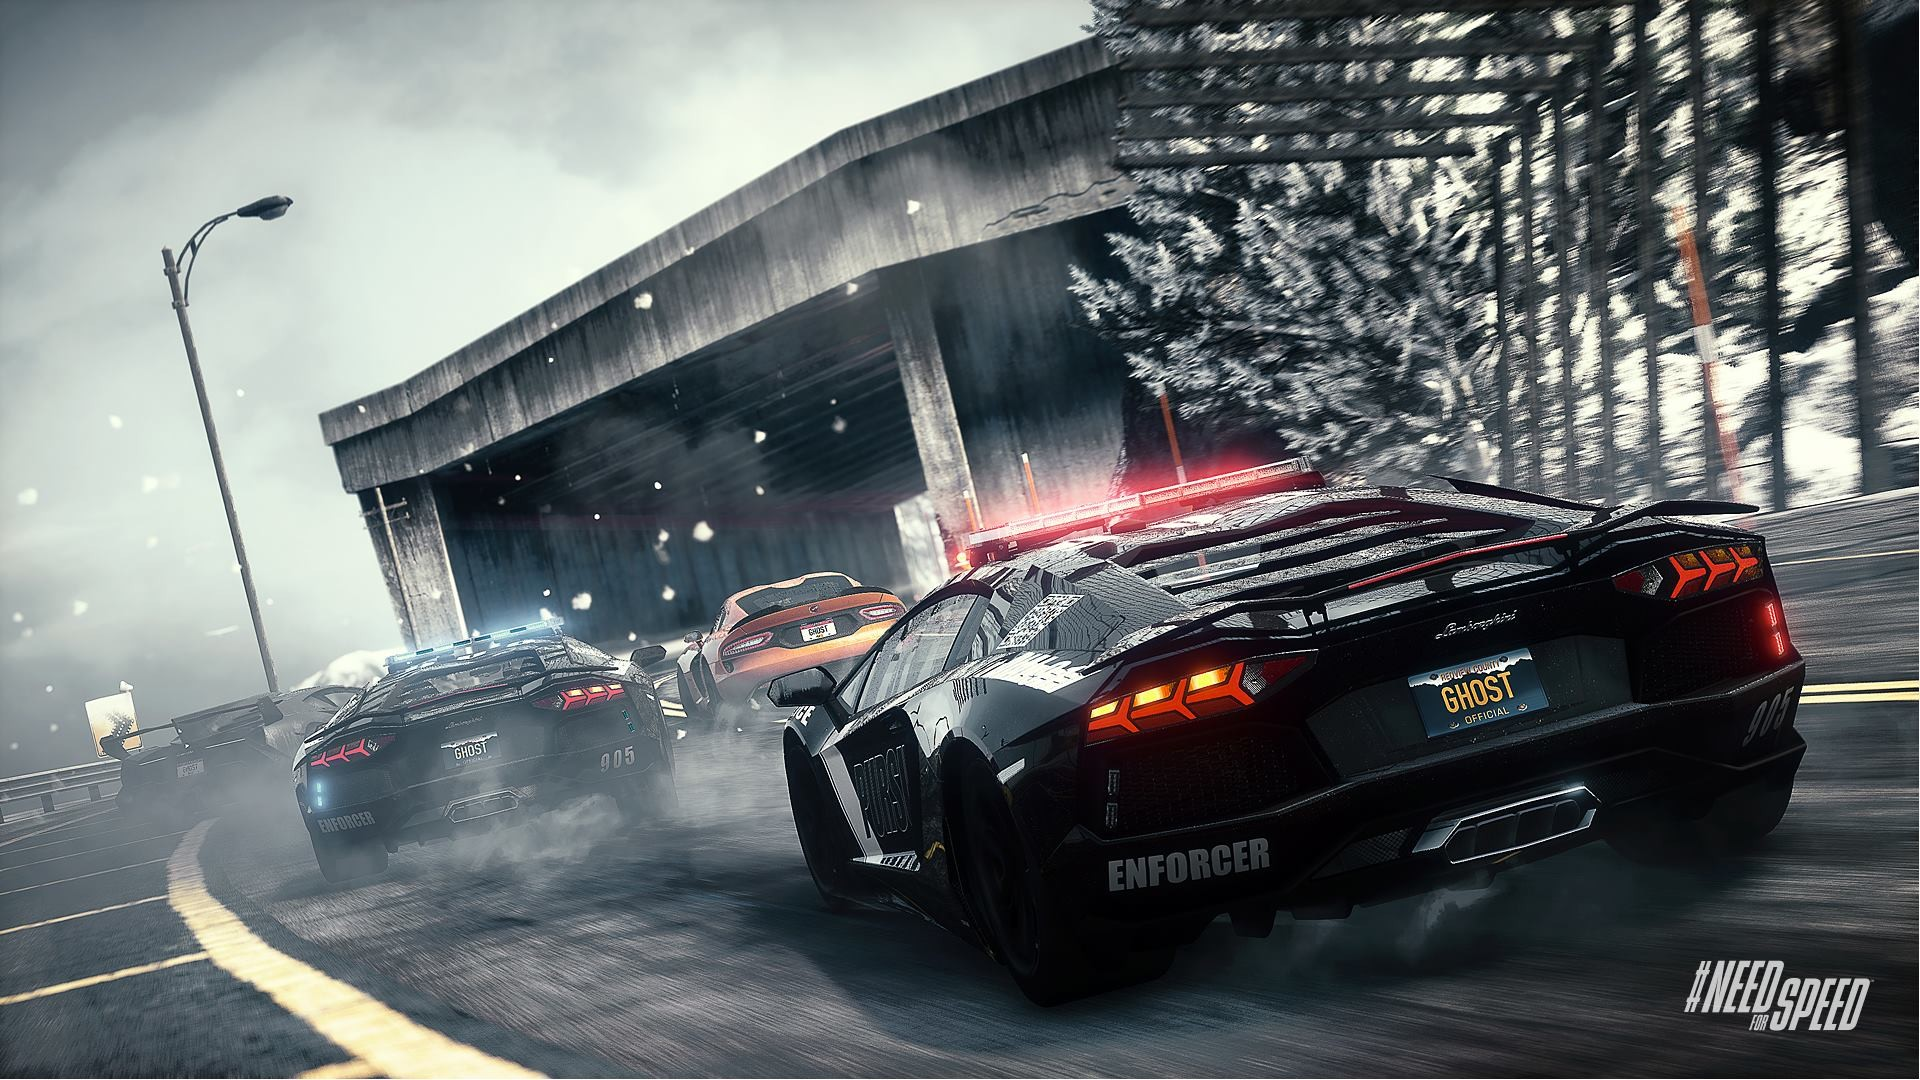 Best 25+ Need for speed rivals ideas only on Pinterest | Bike rivals, Need  for speed and Nfs need for speed